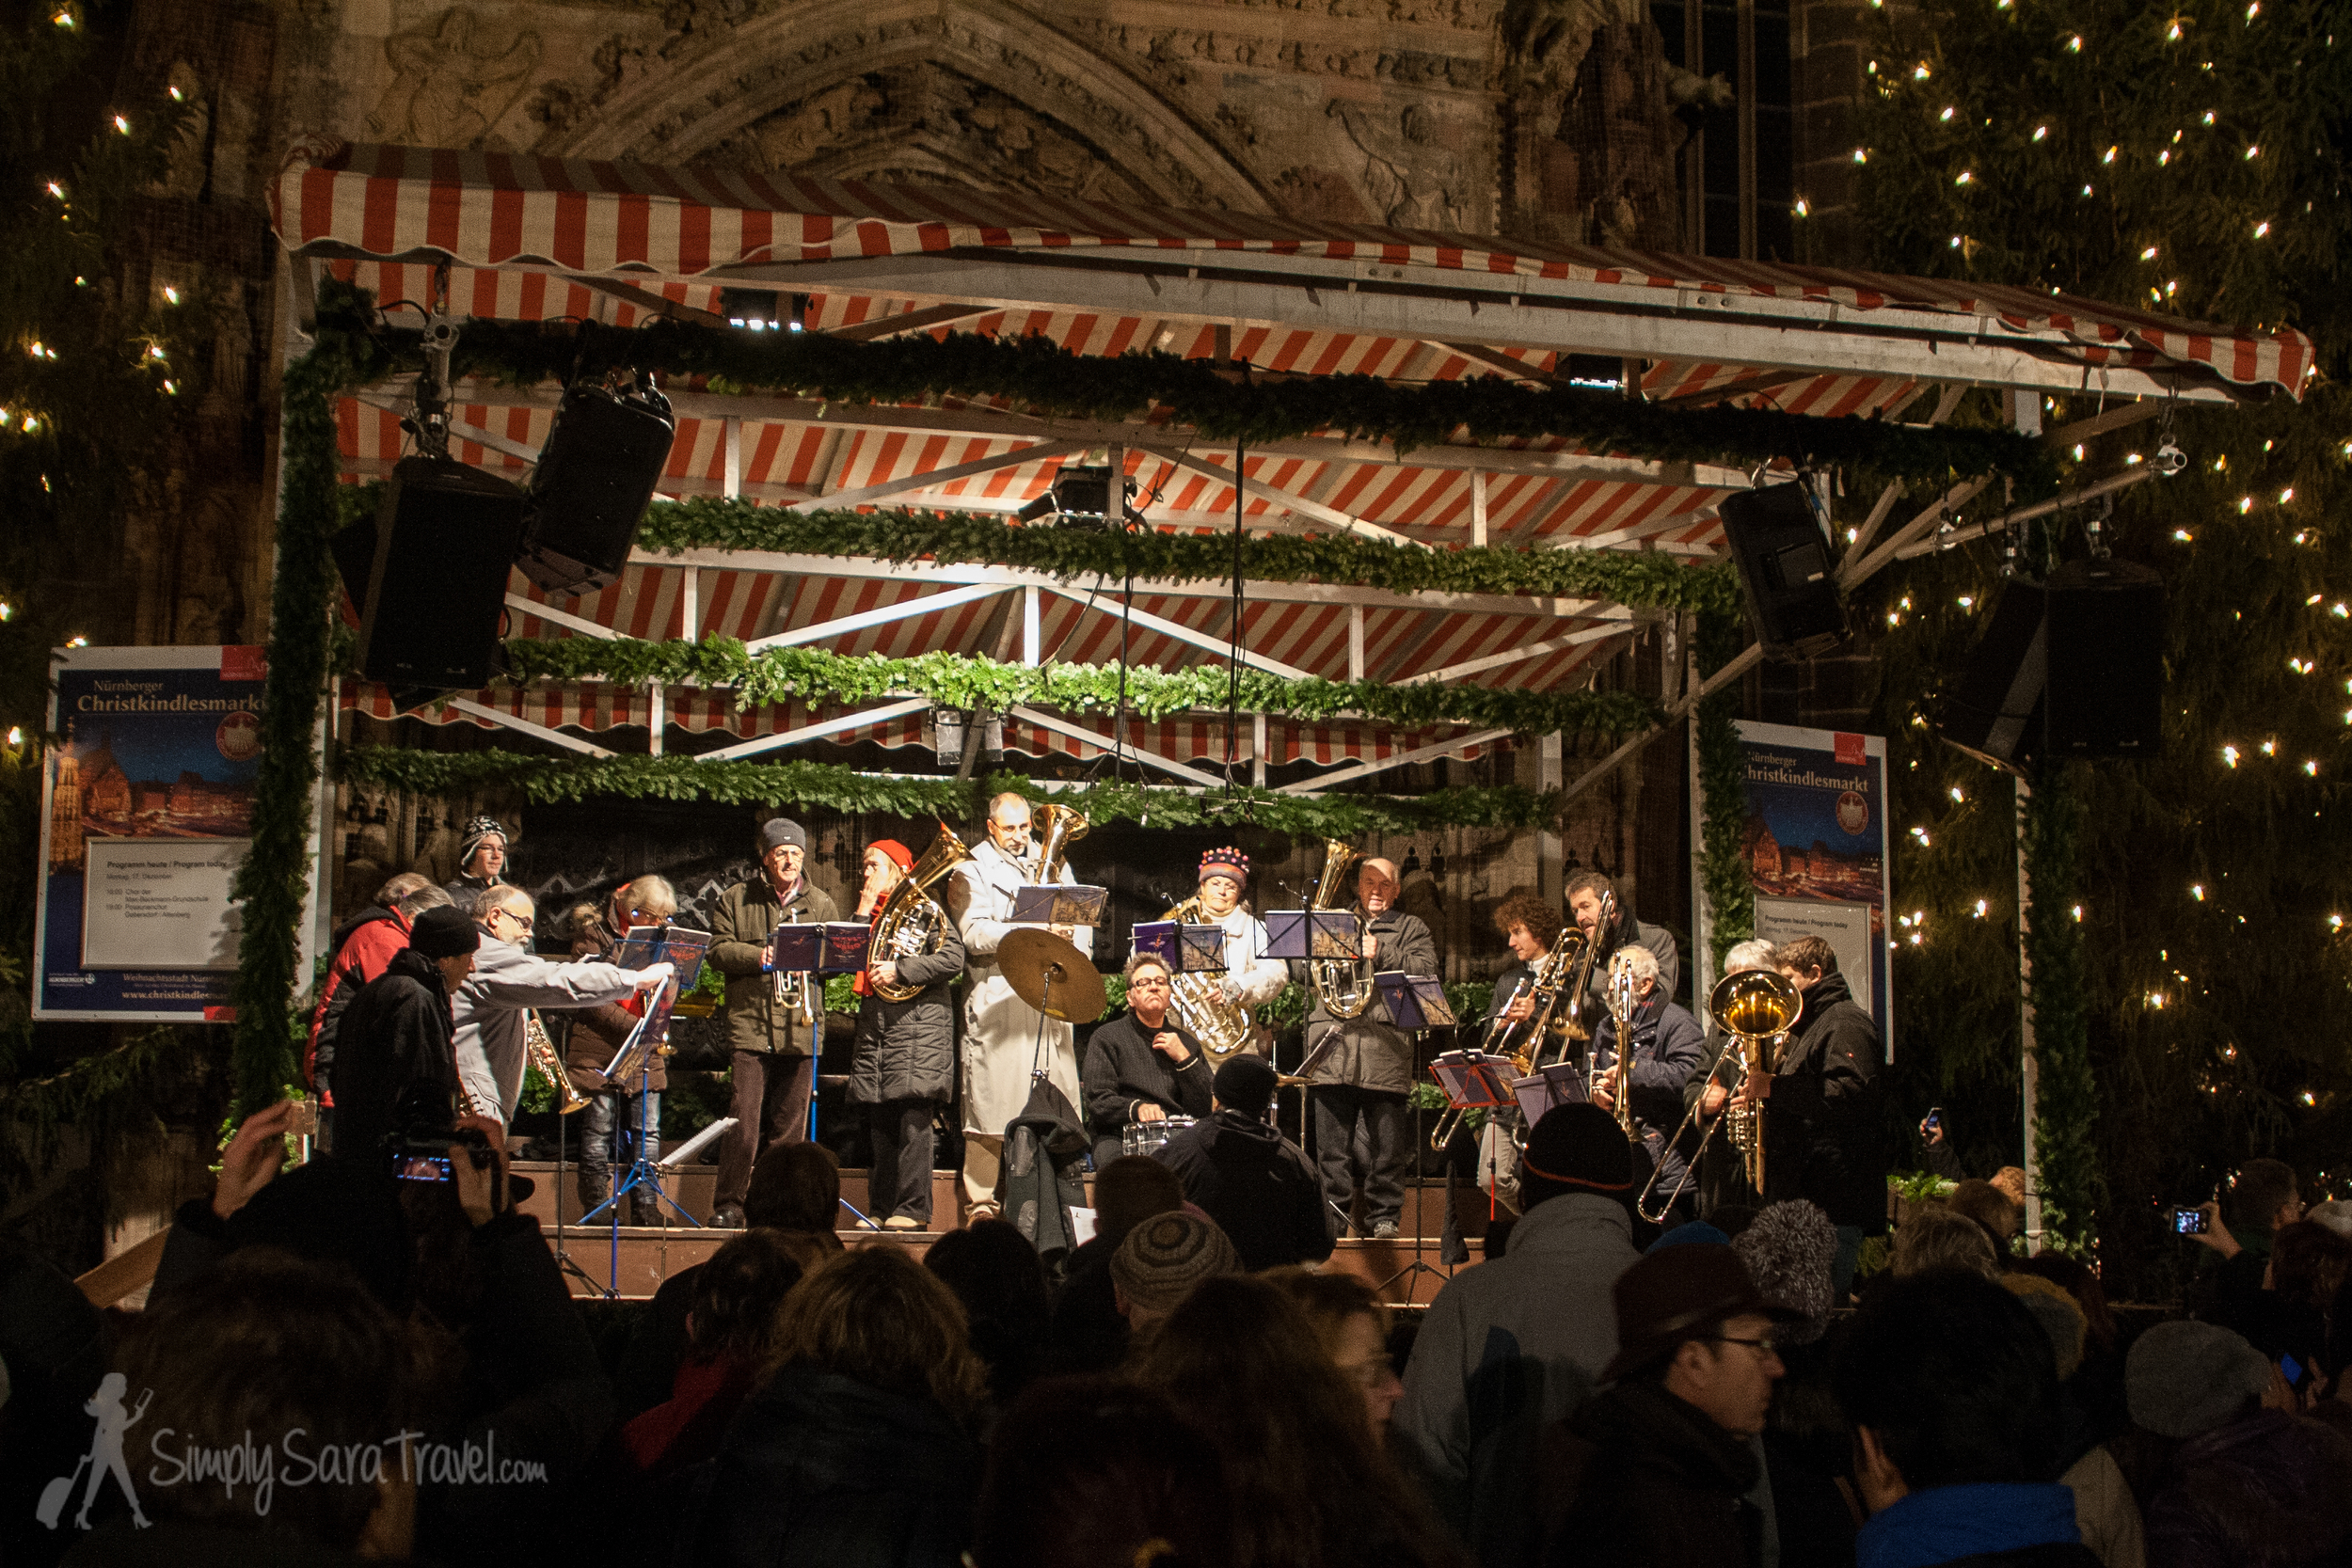 There were so many music performances at the markets like this one we heard in Nürnberg.